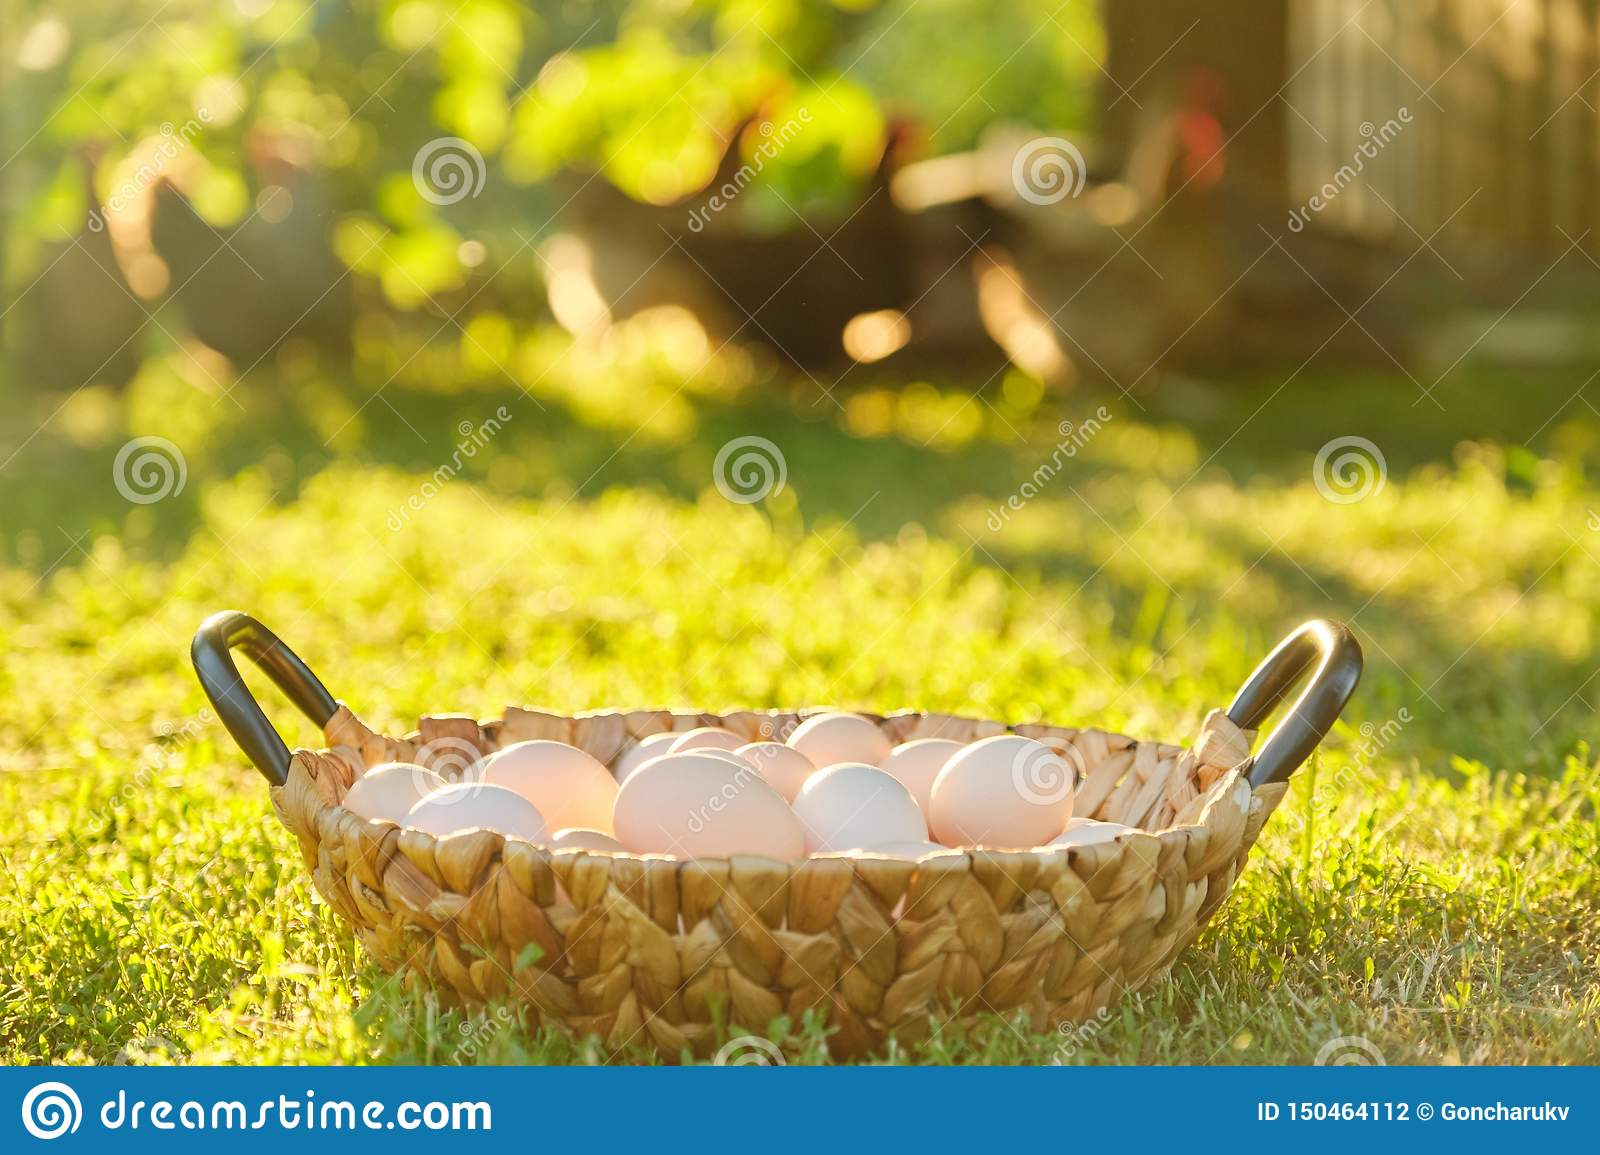 Natural fresh organic farm eggs in basket, grass background nature is the golden hour